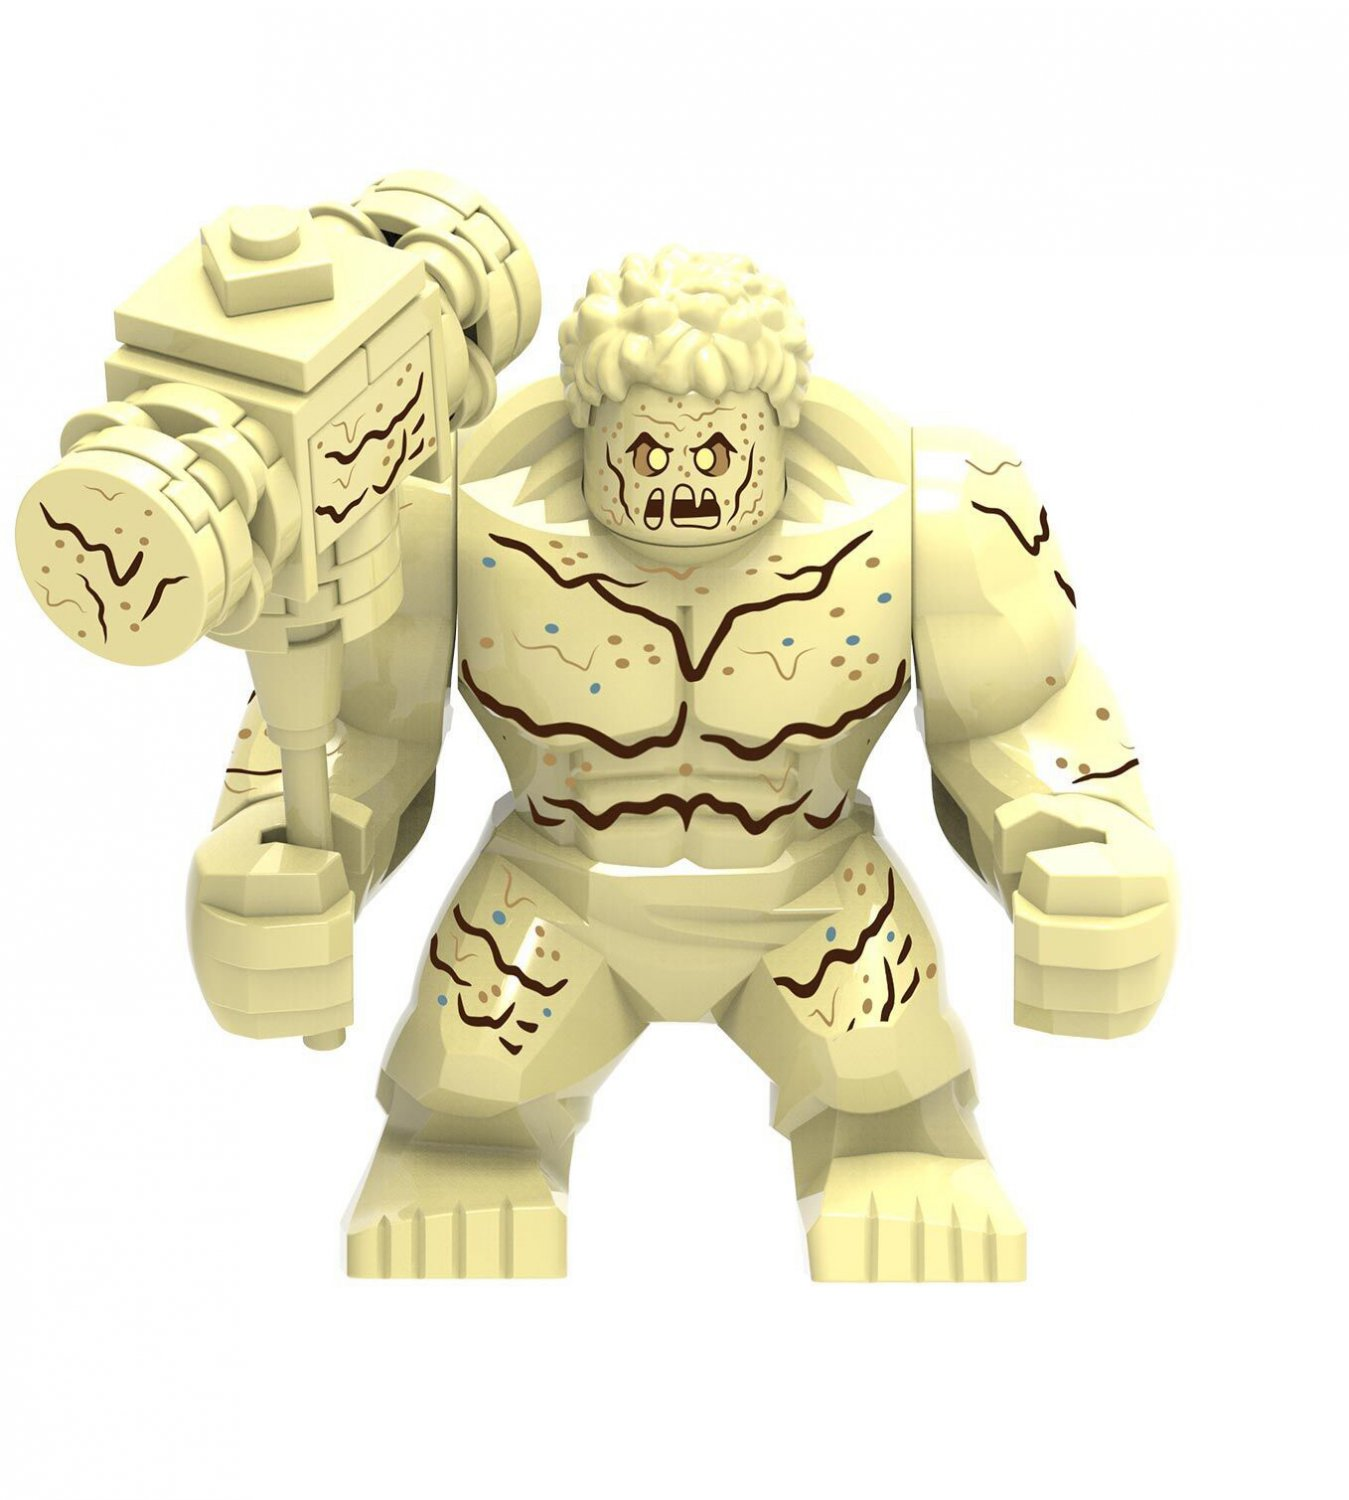 EarthElemental Minifigures Lego Compatible Super Heroes Toy